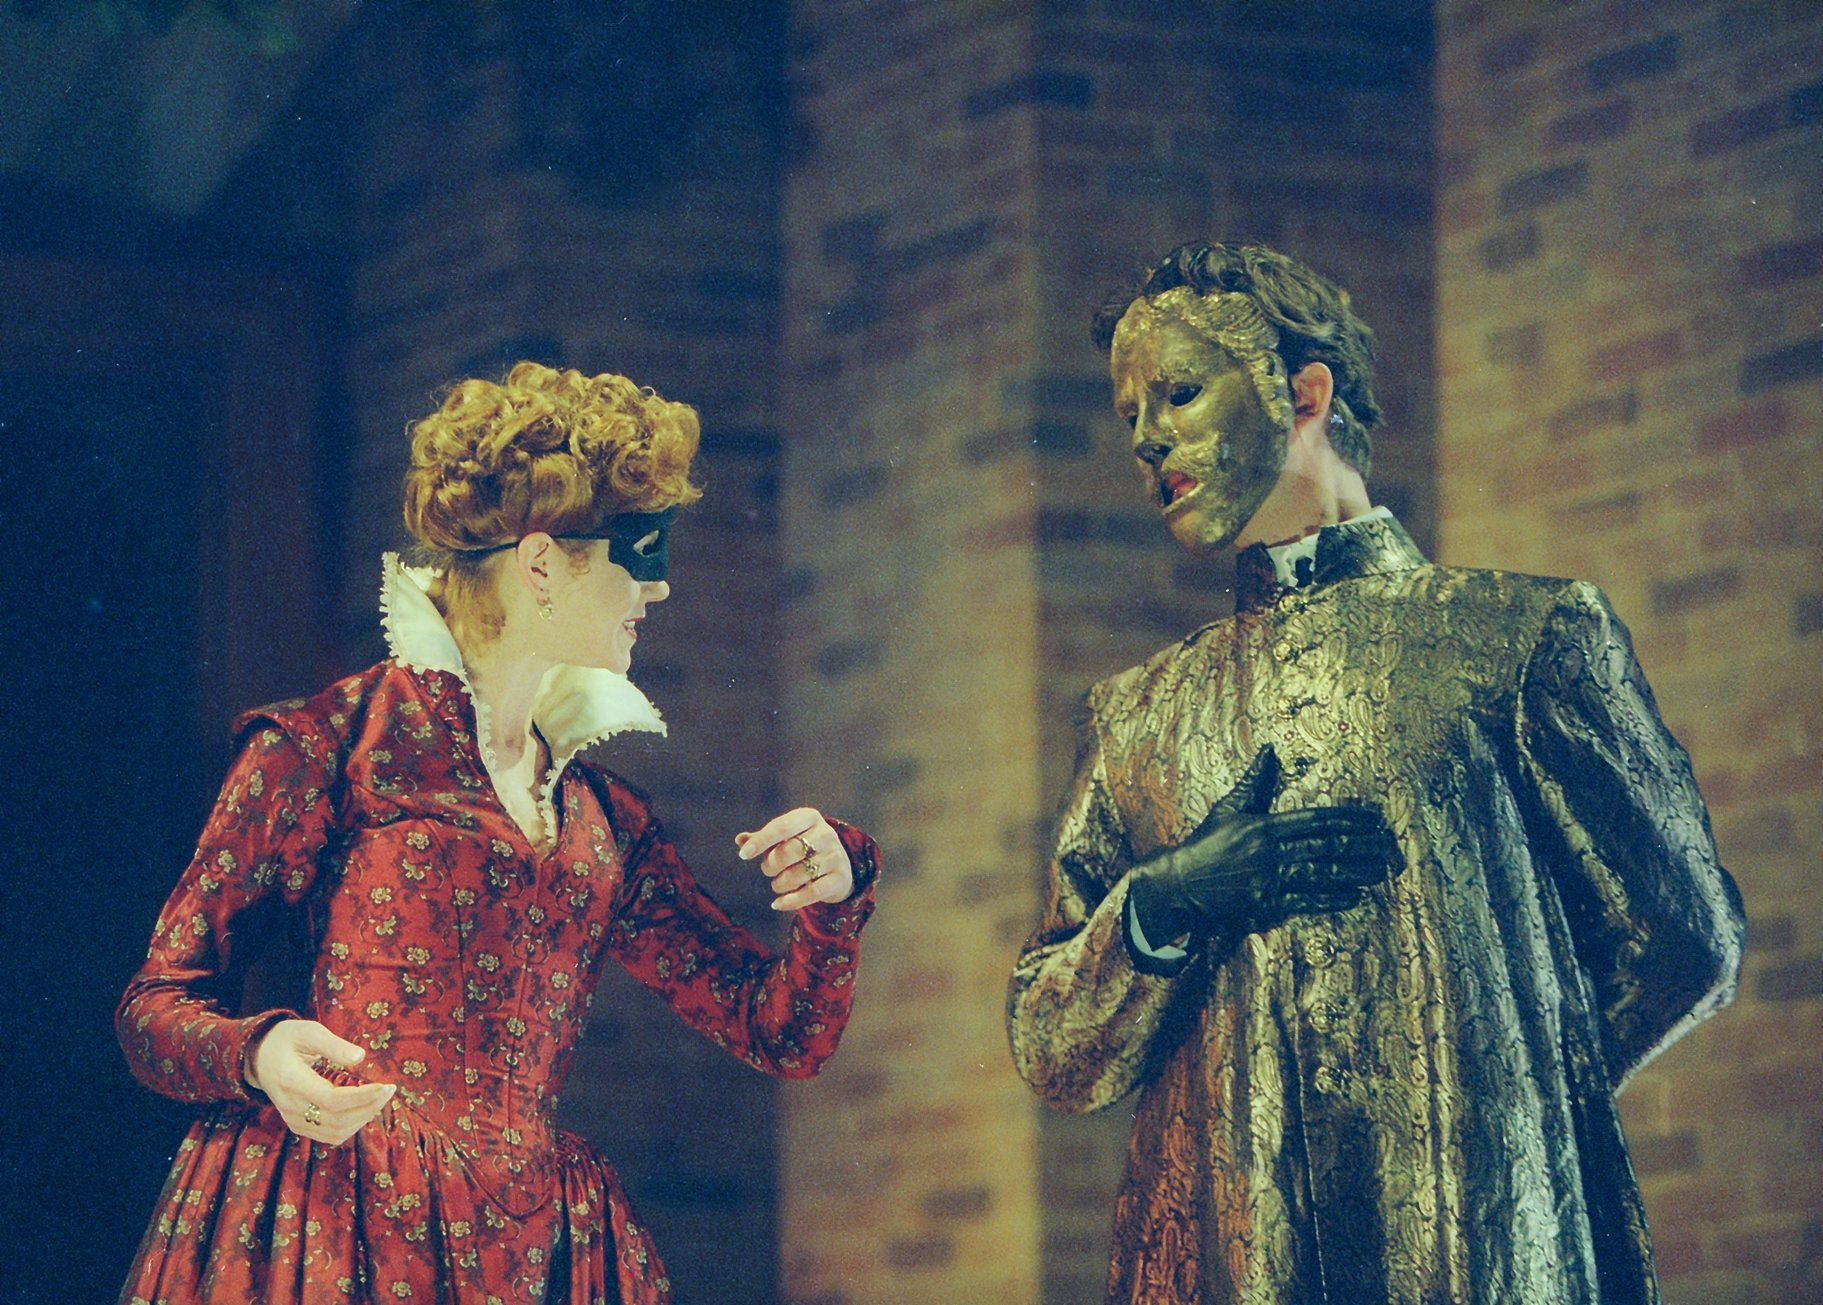 Beatrice in a red dress and black mask with Benedick in a gold tunic and mask.